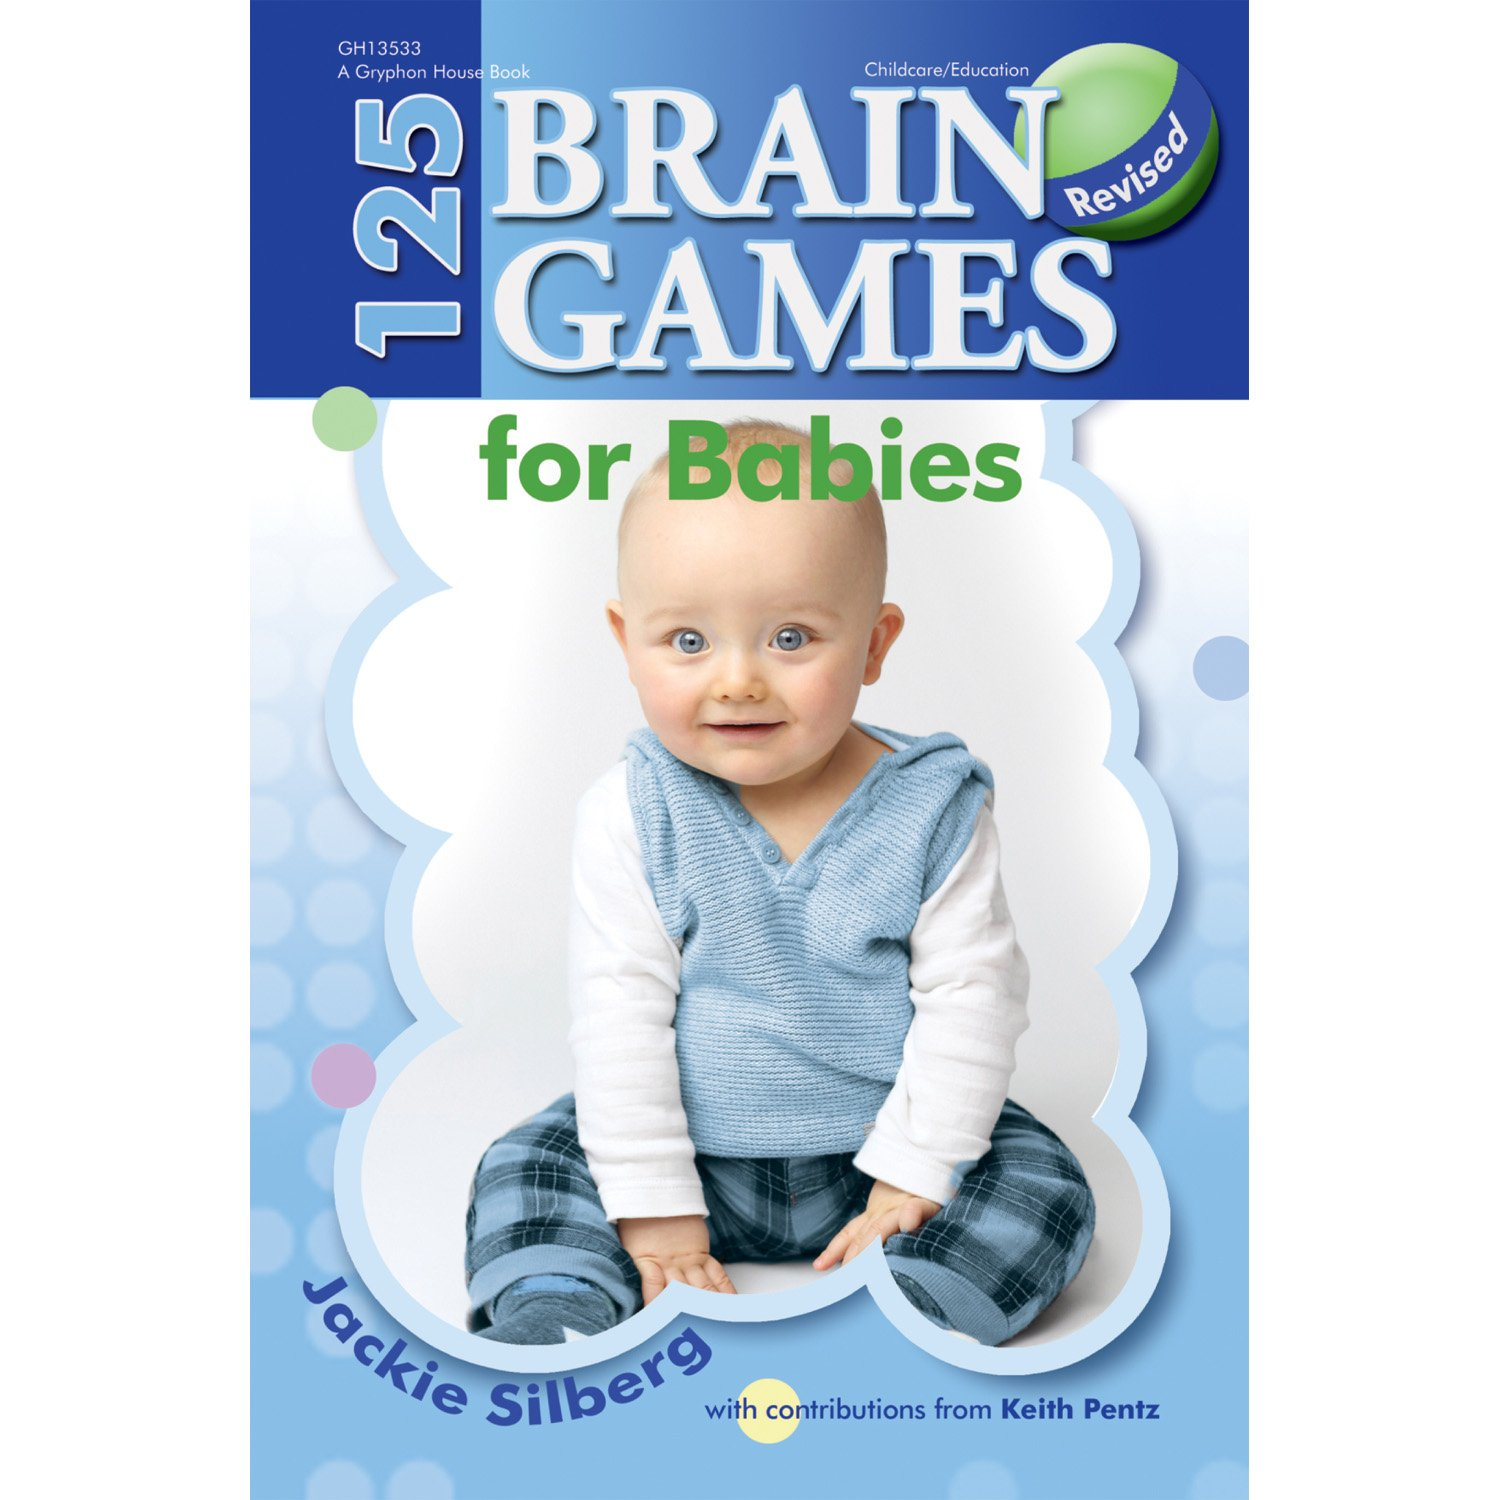 125 brain games for babies jackie silberg 9780876593912 amazon